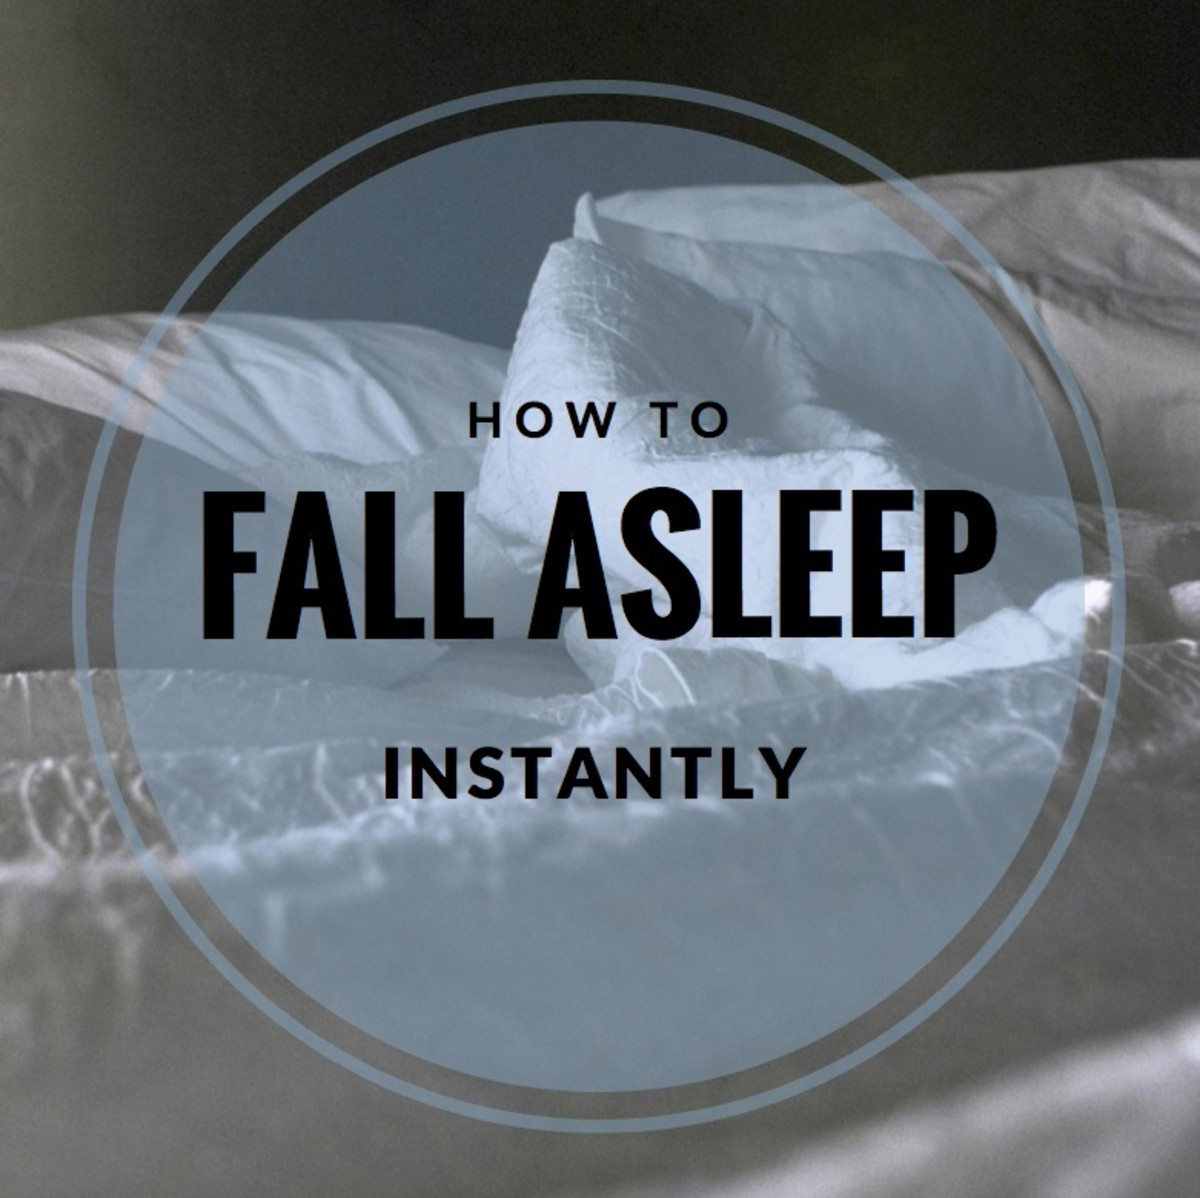 How to Fall Asleep Instantly